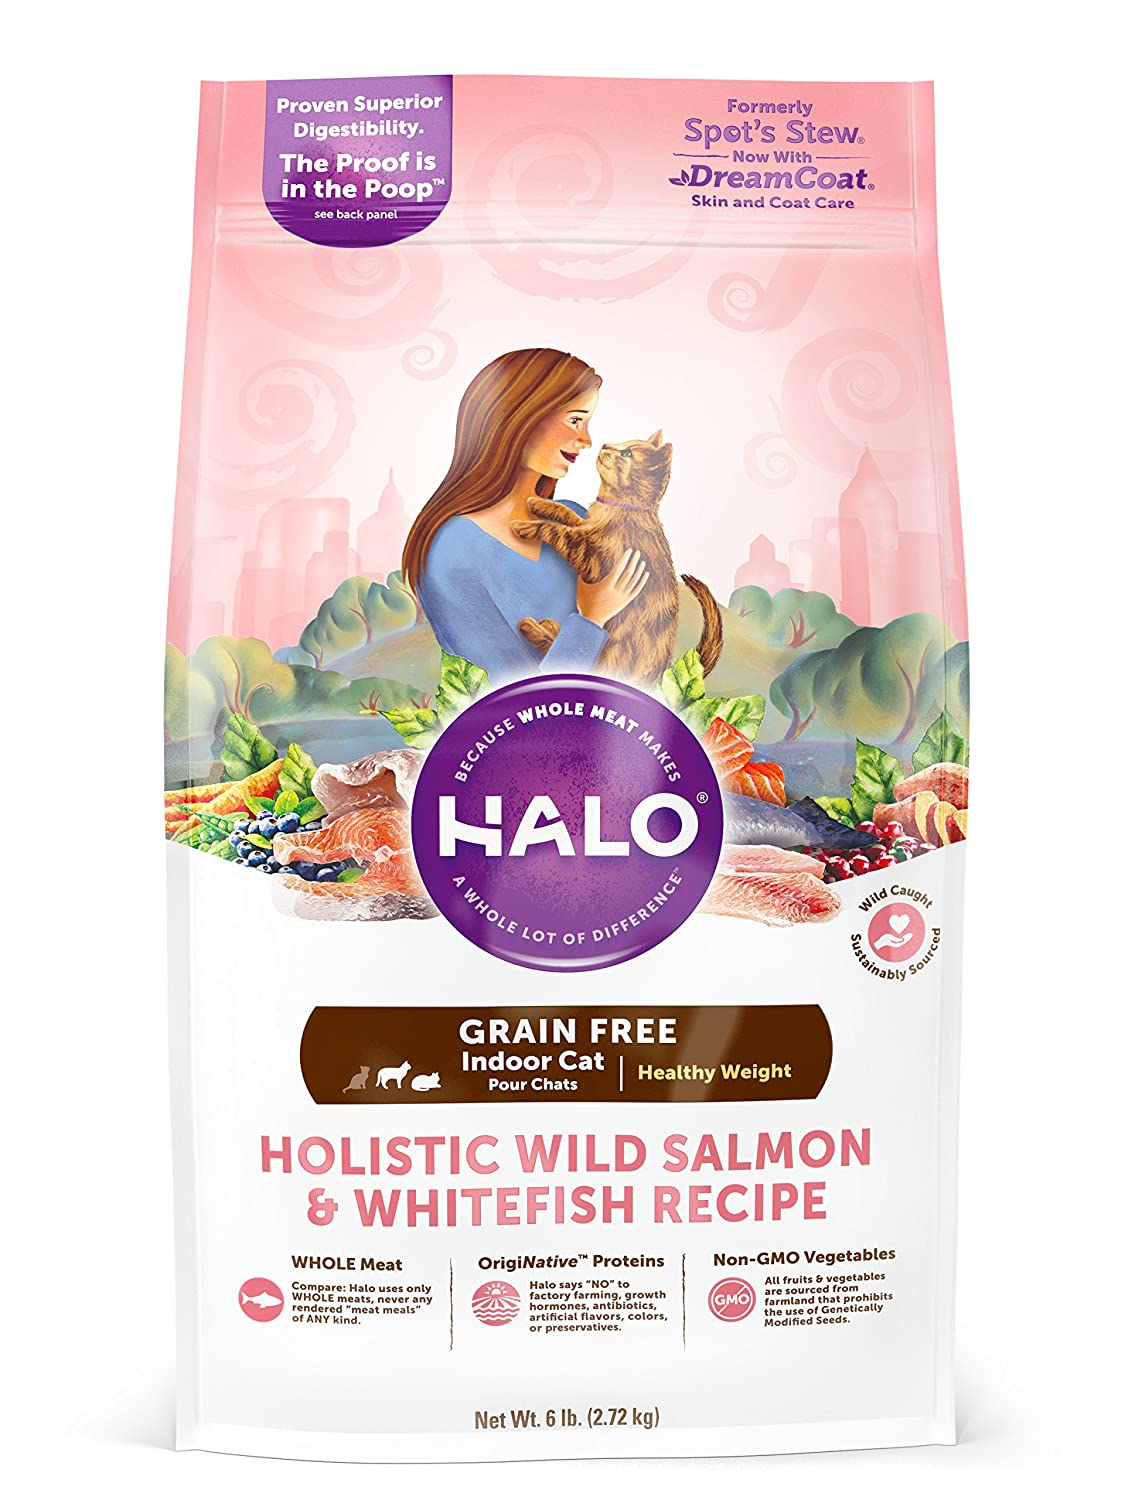 6 lb Halo Holistic Healthy Weight Dry Cat Food for Indoor Cats, Grain Free Wild Salmon and Whitefish, 6 LB Bag of Indoor Cat Food